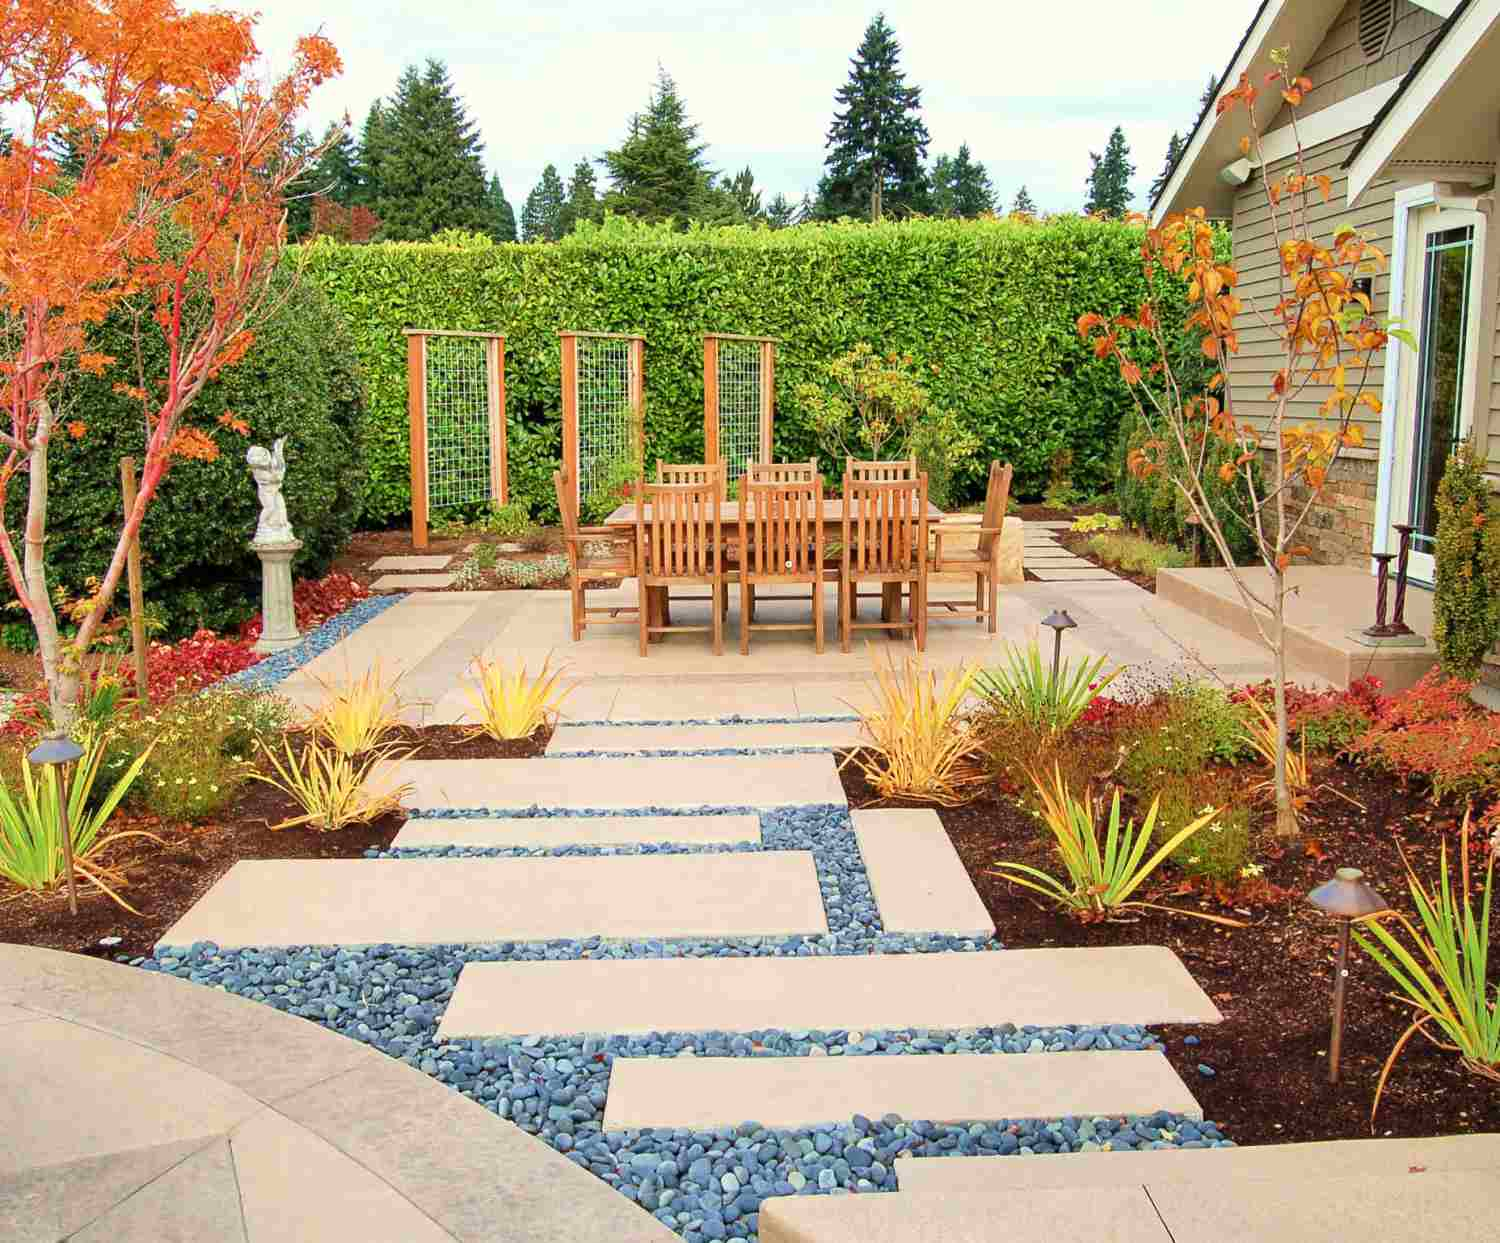 Vertical garden for patio with wooden table and chairs and stone walkway.